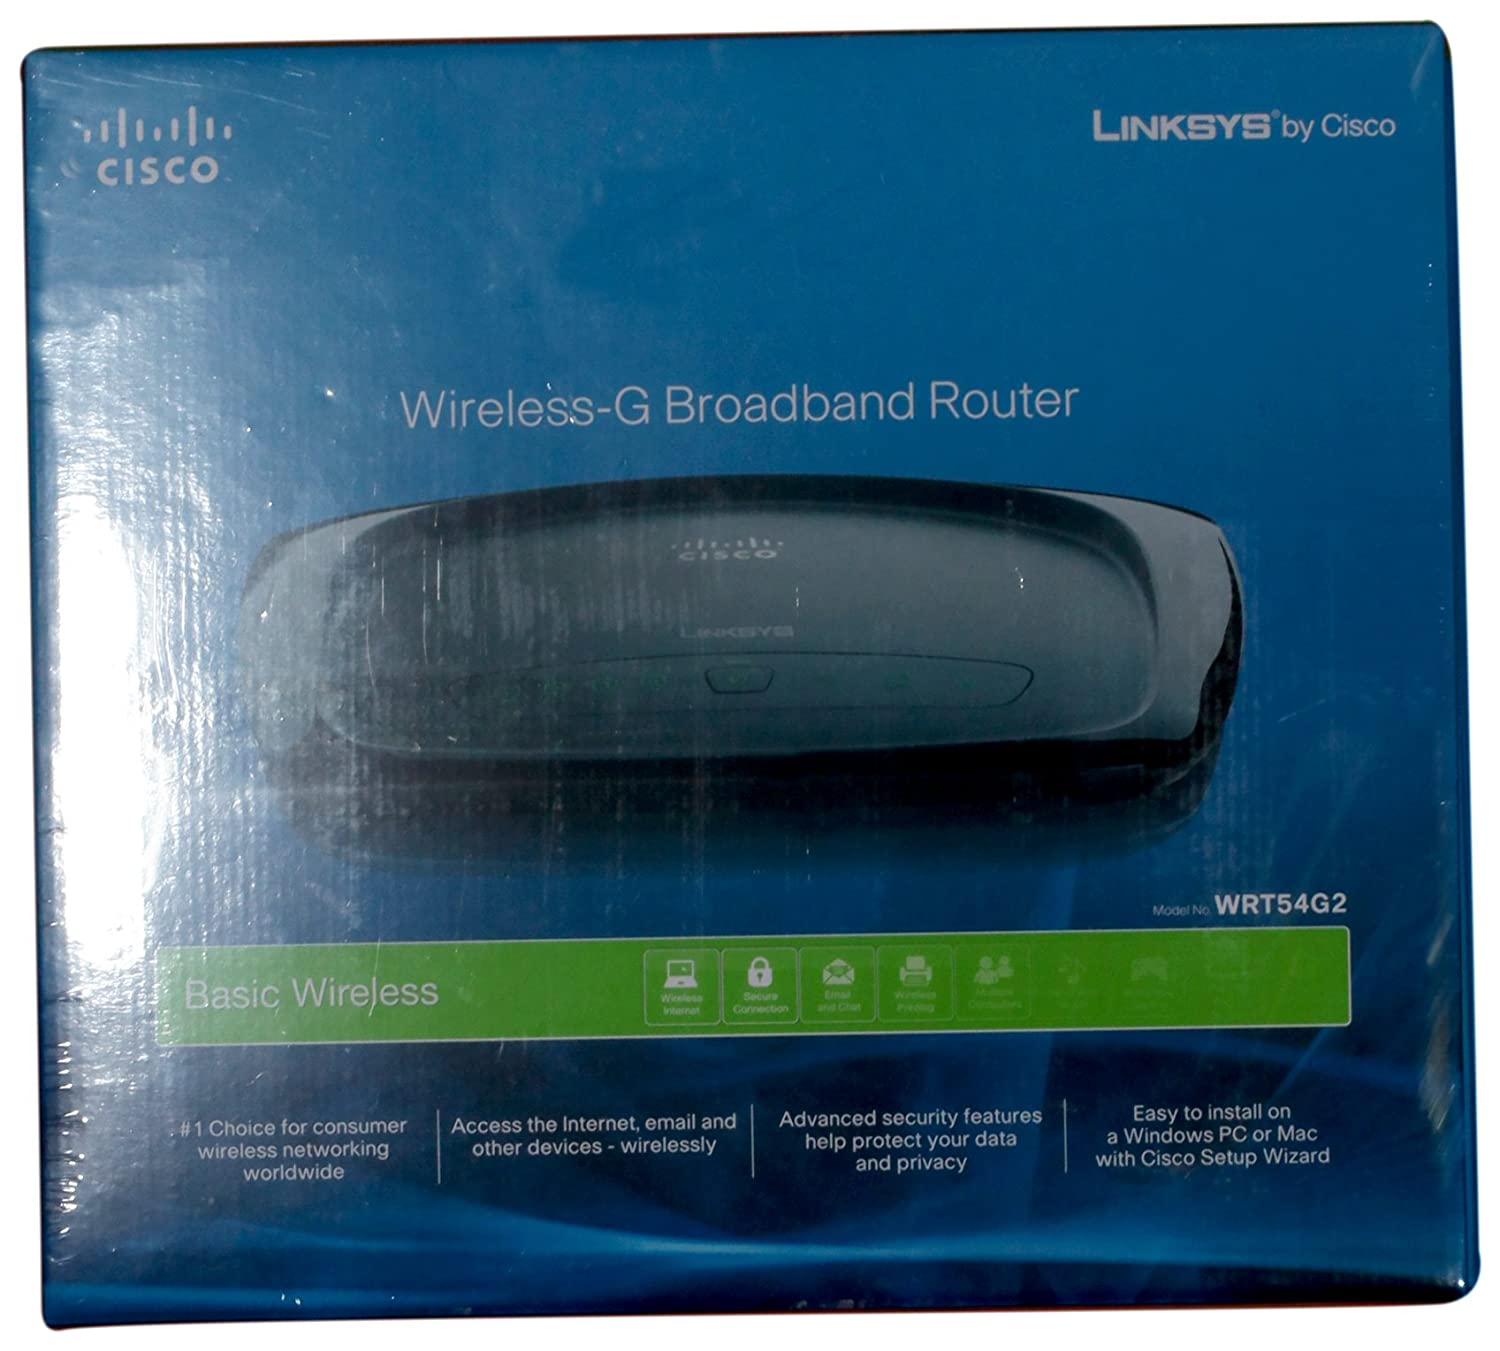 Driver for Linksys WRT54GS2 Wireless-G Router